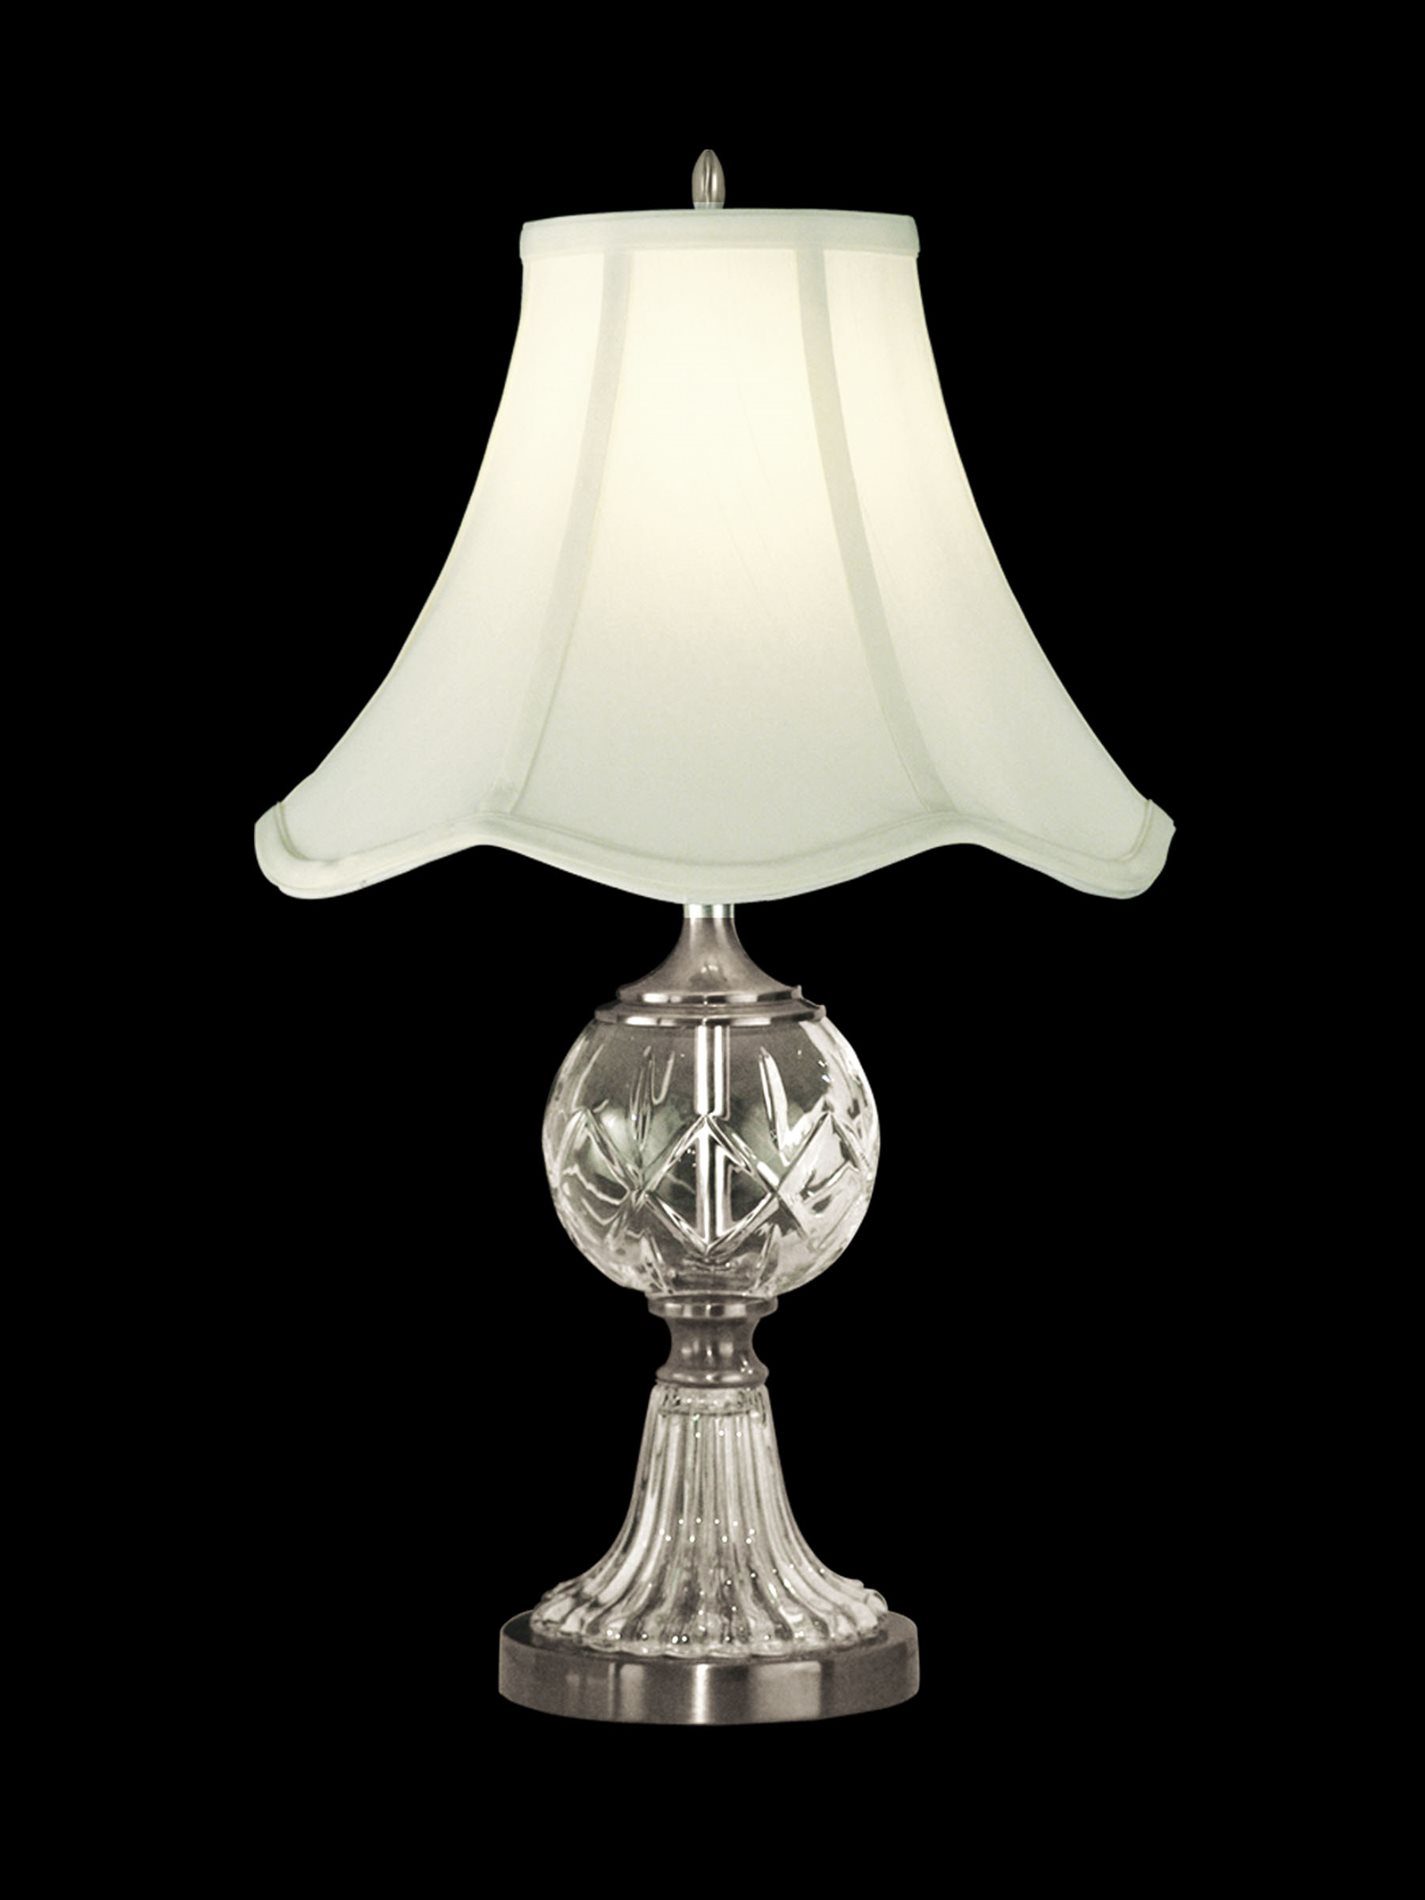 Dale Tiffany Gt10356 Crystal Transitional Table Lamp Dt